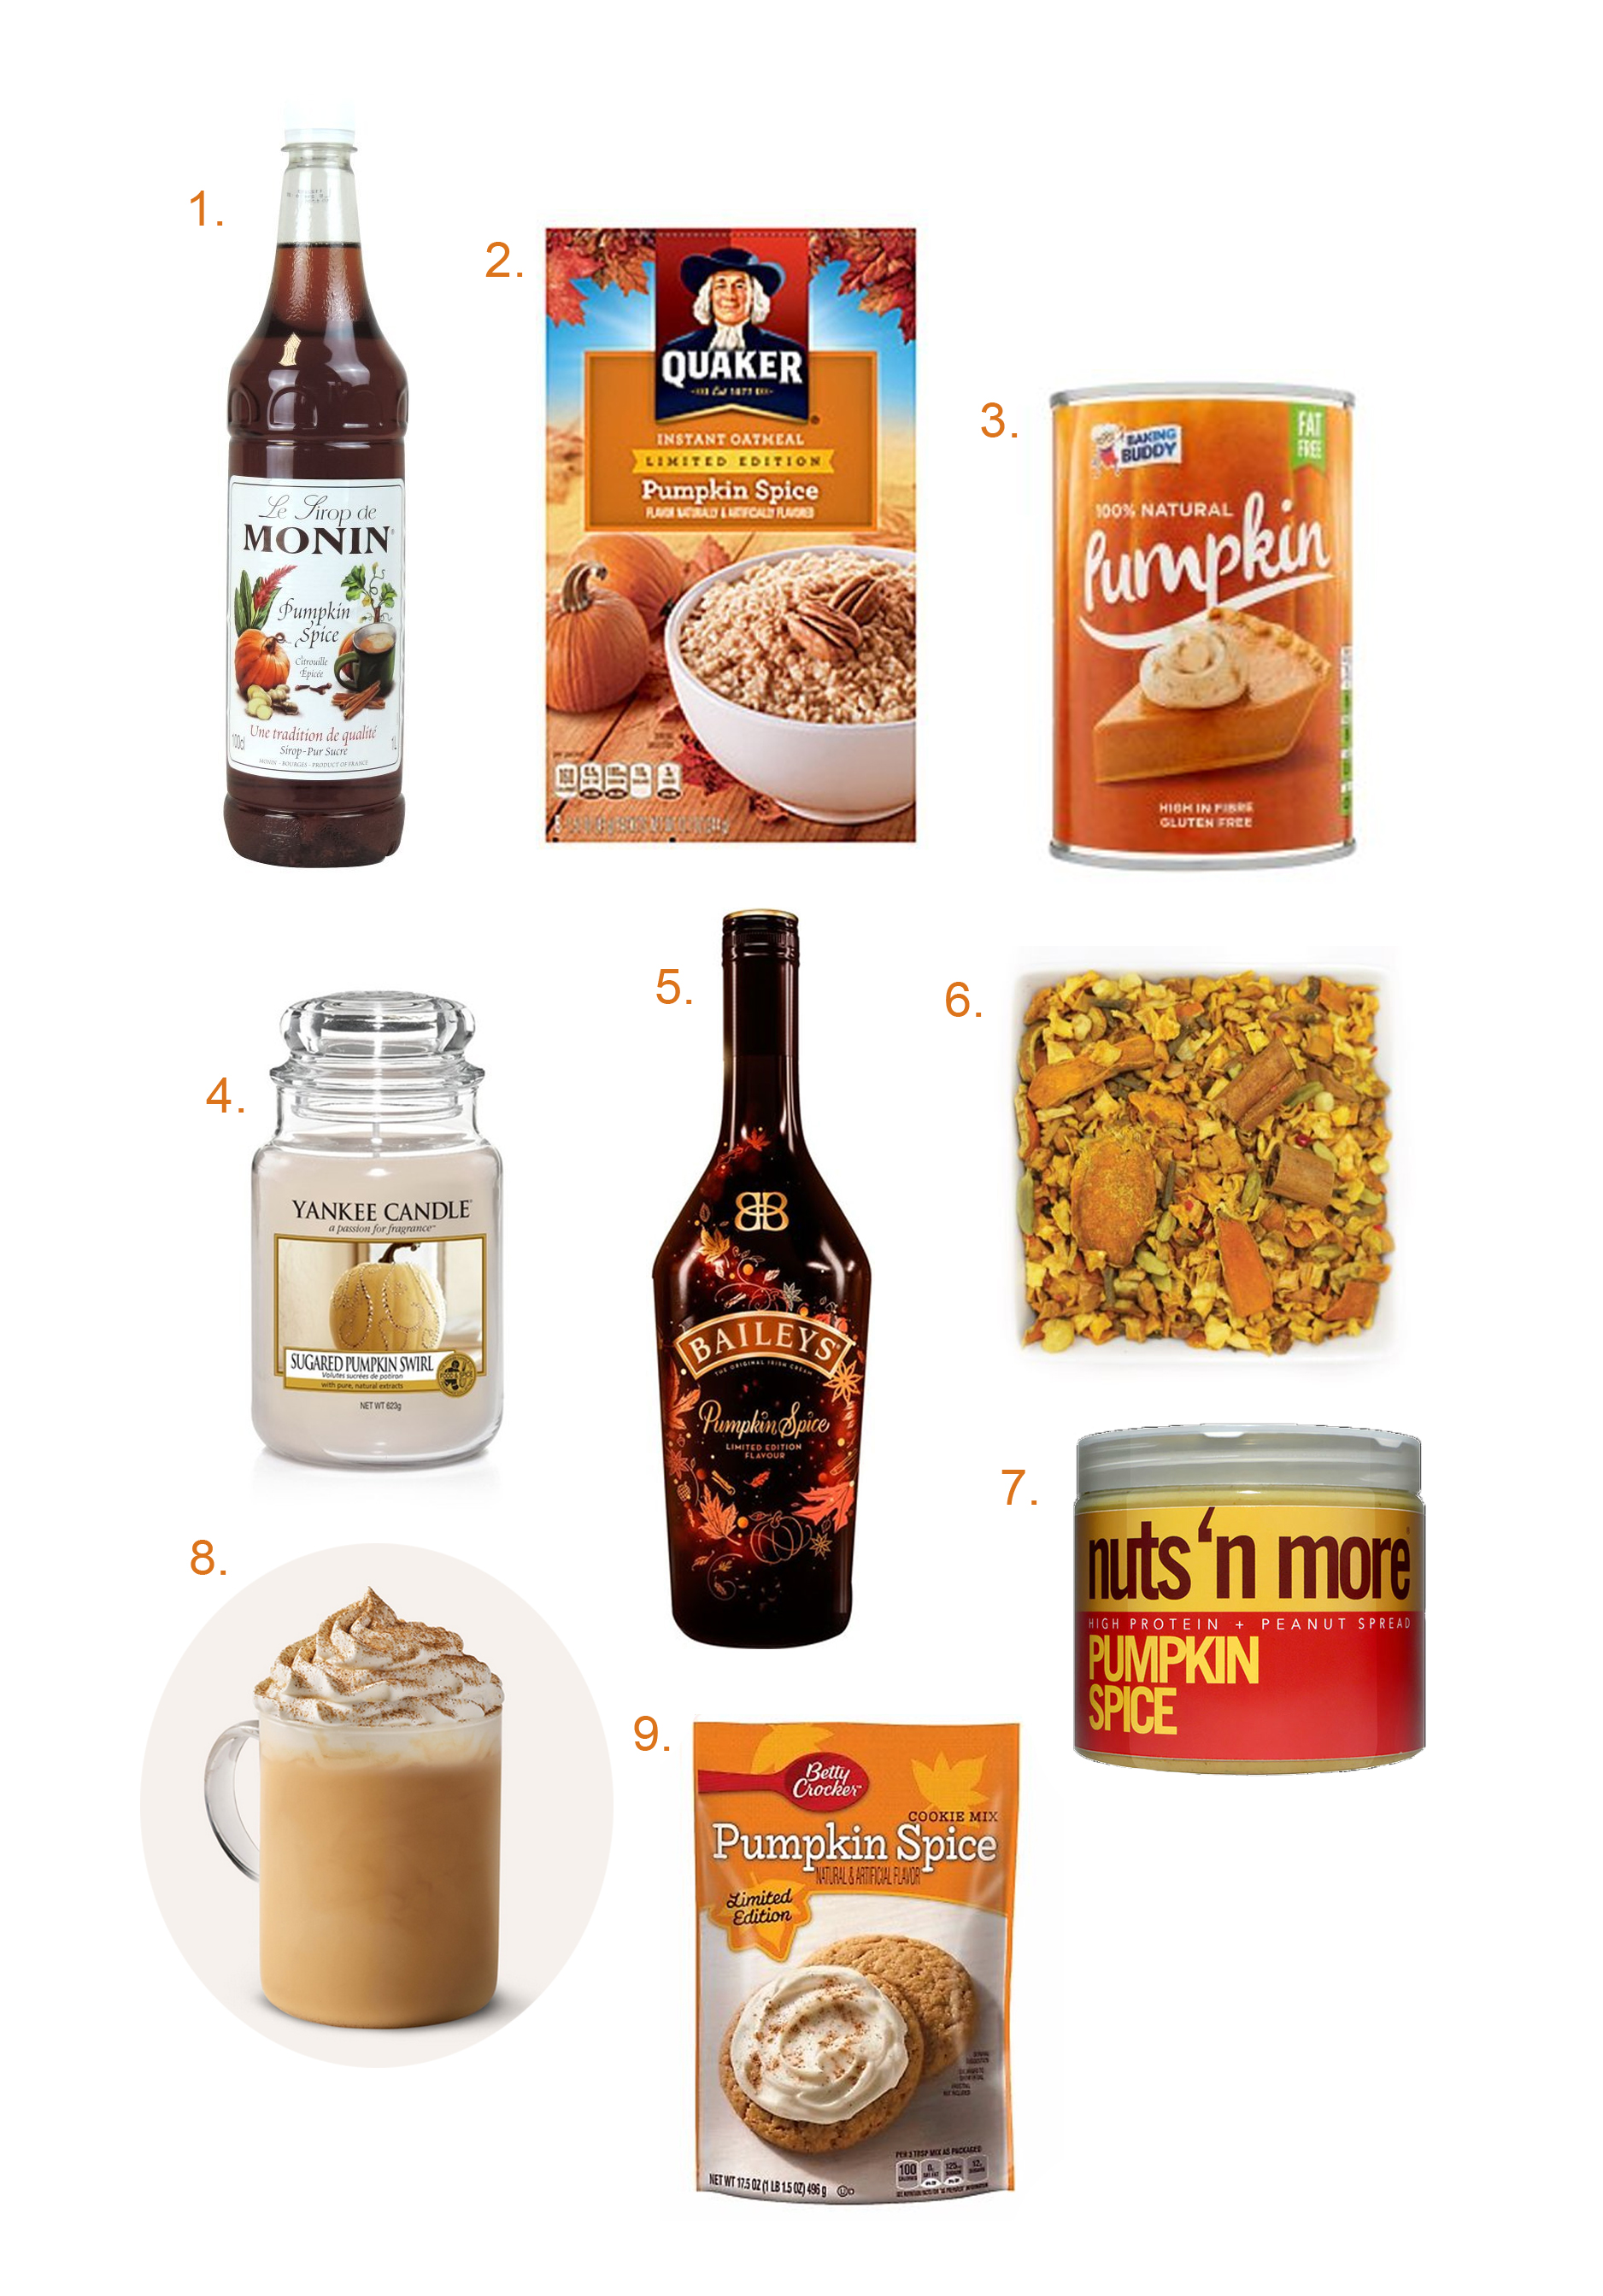 Pumpkin spice UK edition products that are available in the UK England